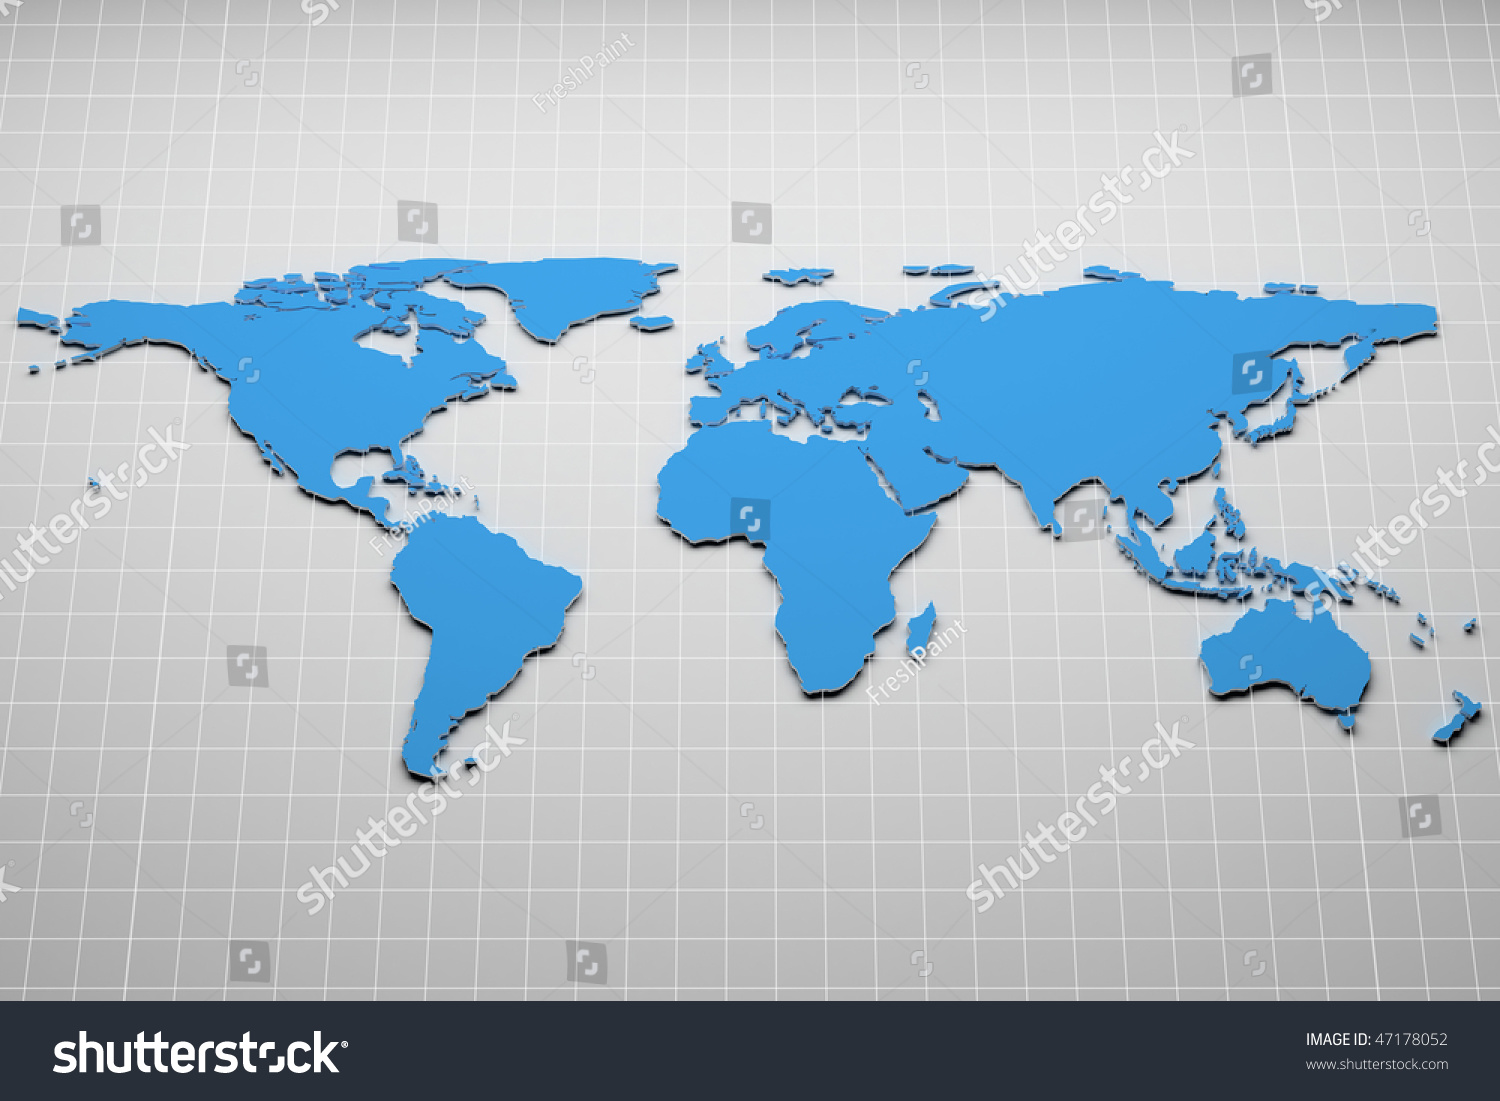 World map on grid 3 d illustration stock illustration 47178052 world map on the grid 3d illustration gumiabroncs Gallery